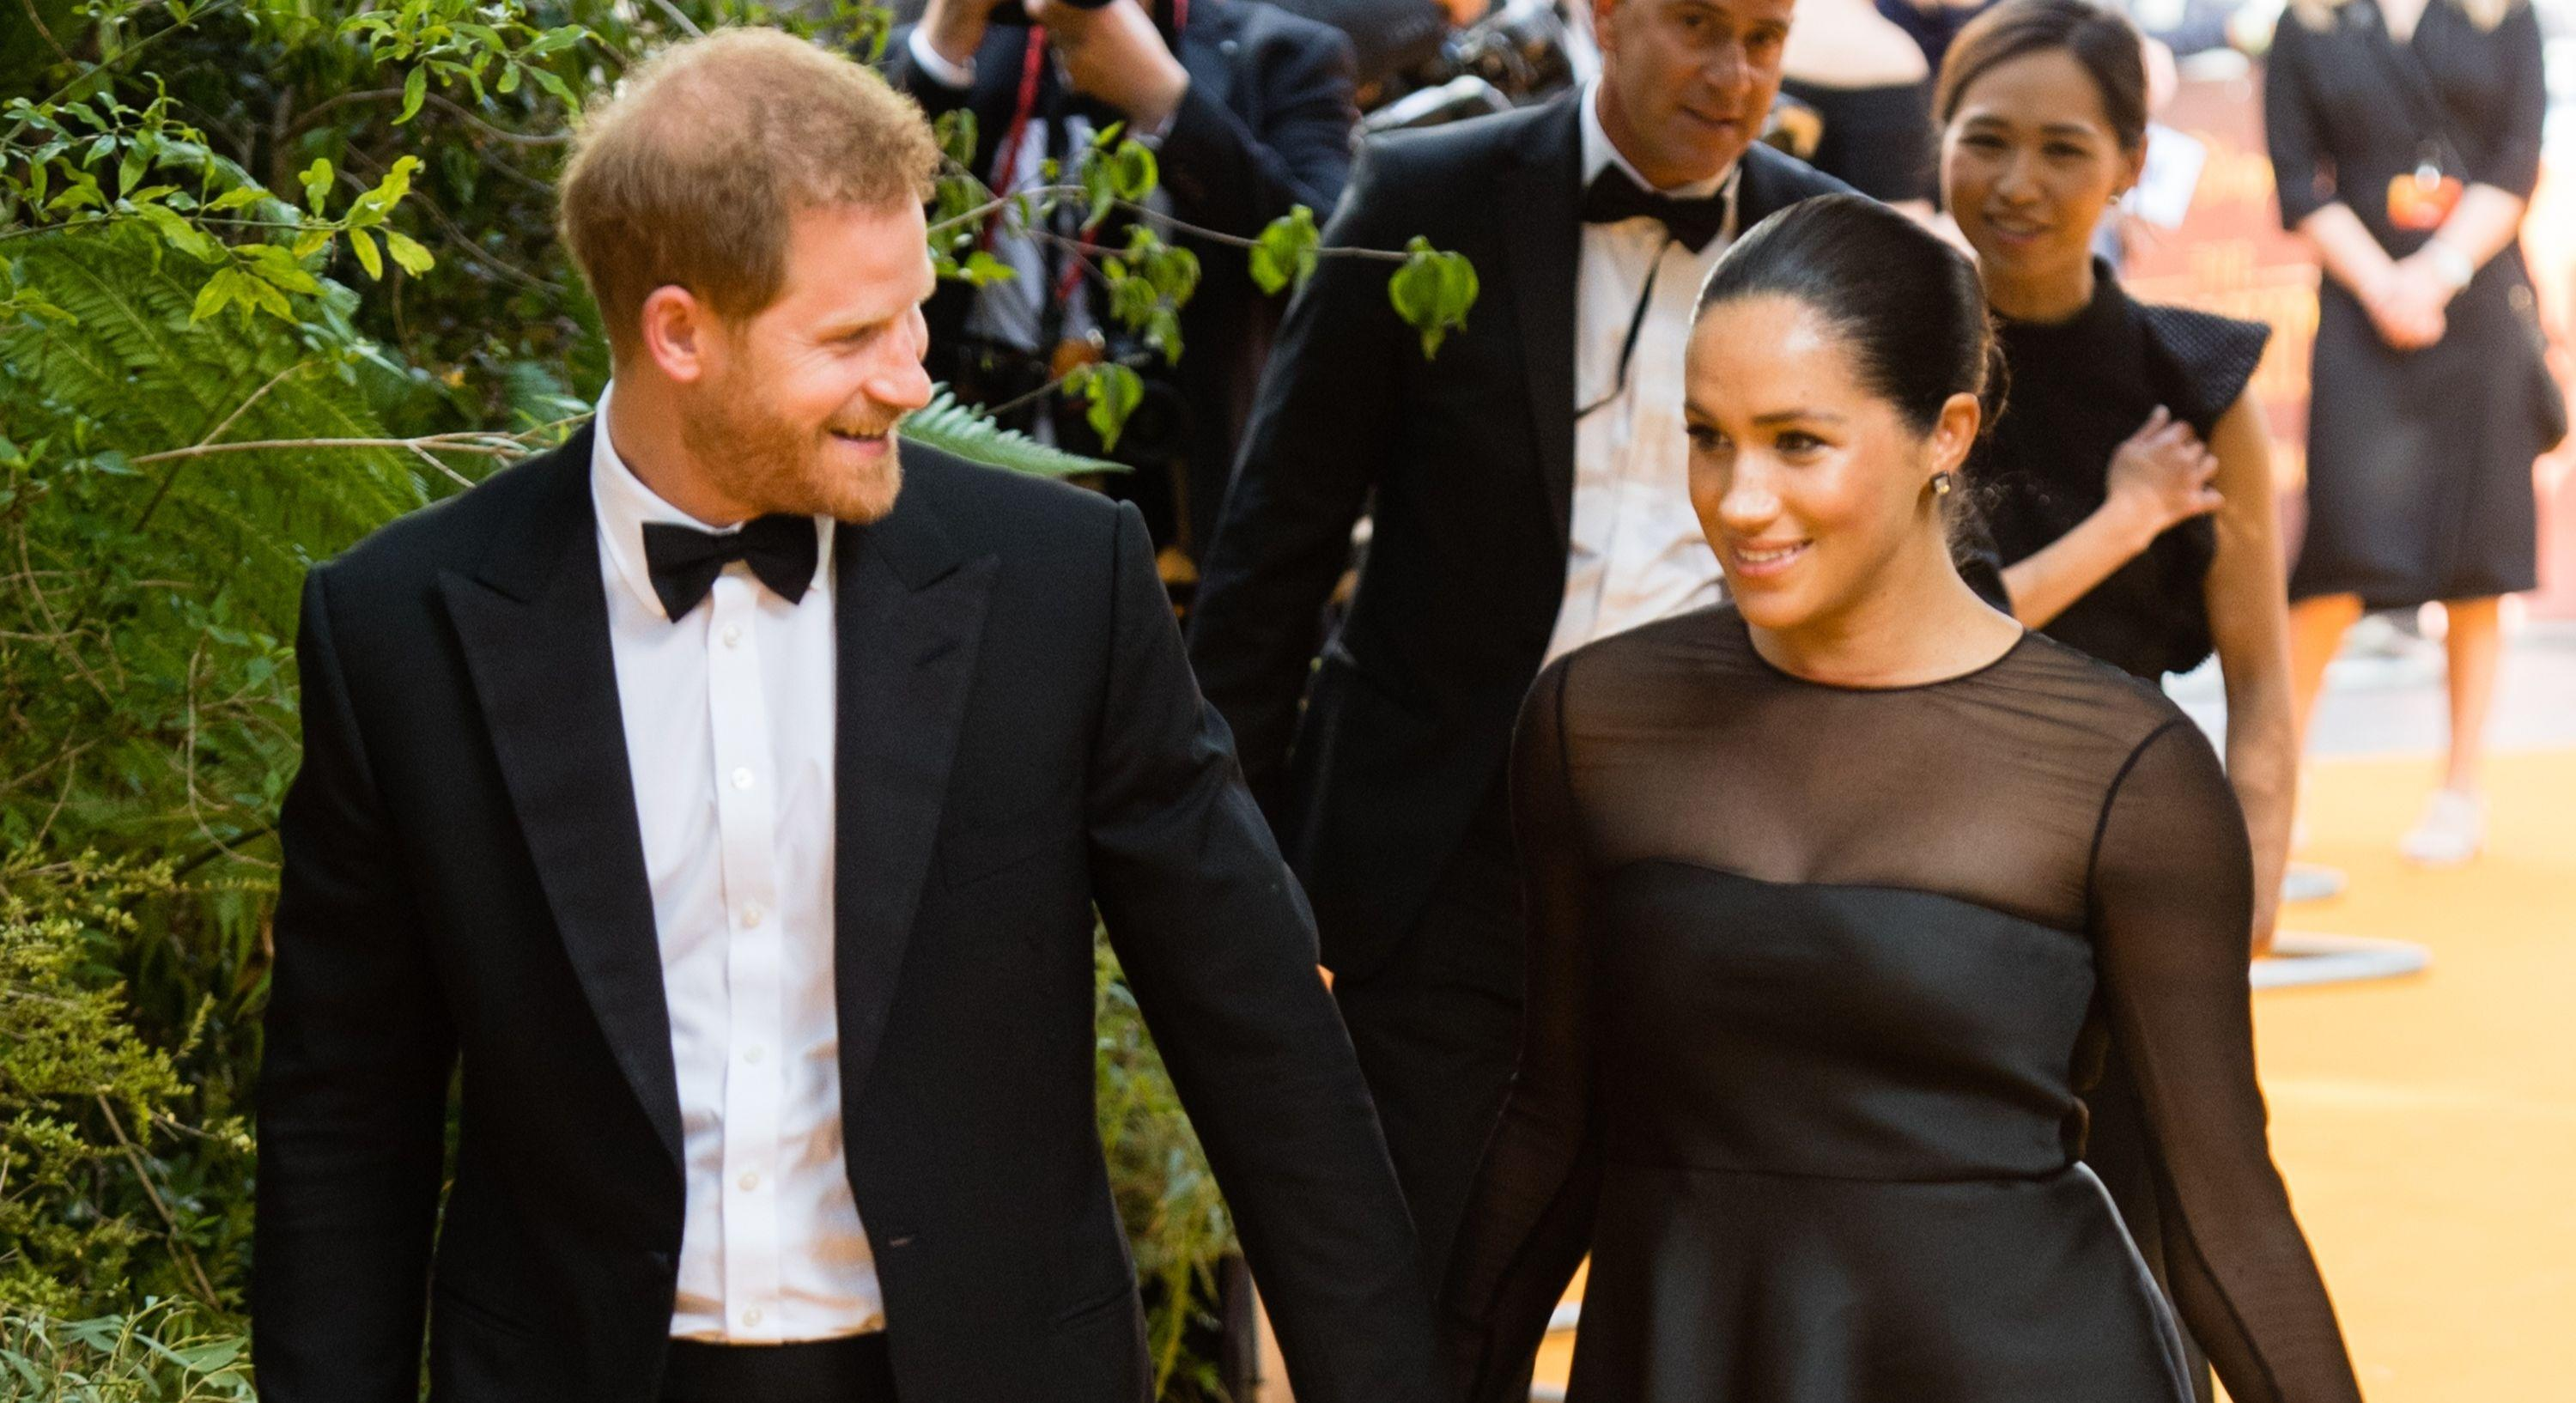 Meghan Markle and Prince Harry 'break dinner party etiquette by